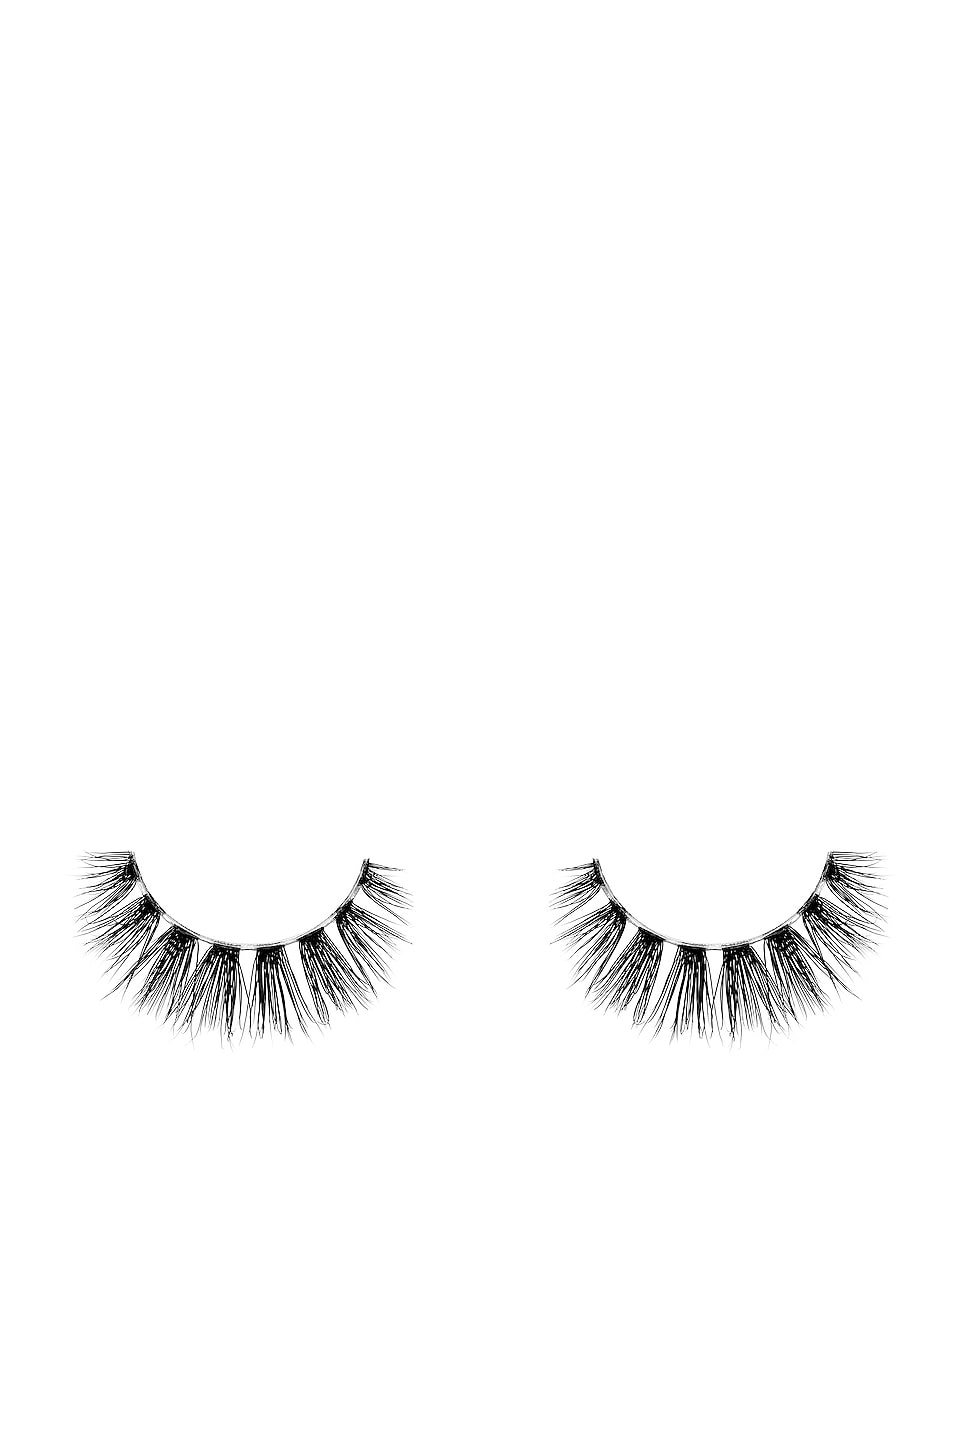 Velour Lashes Bare Naked Mink Lashes